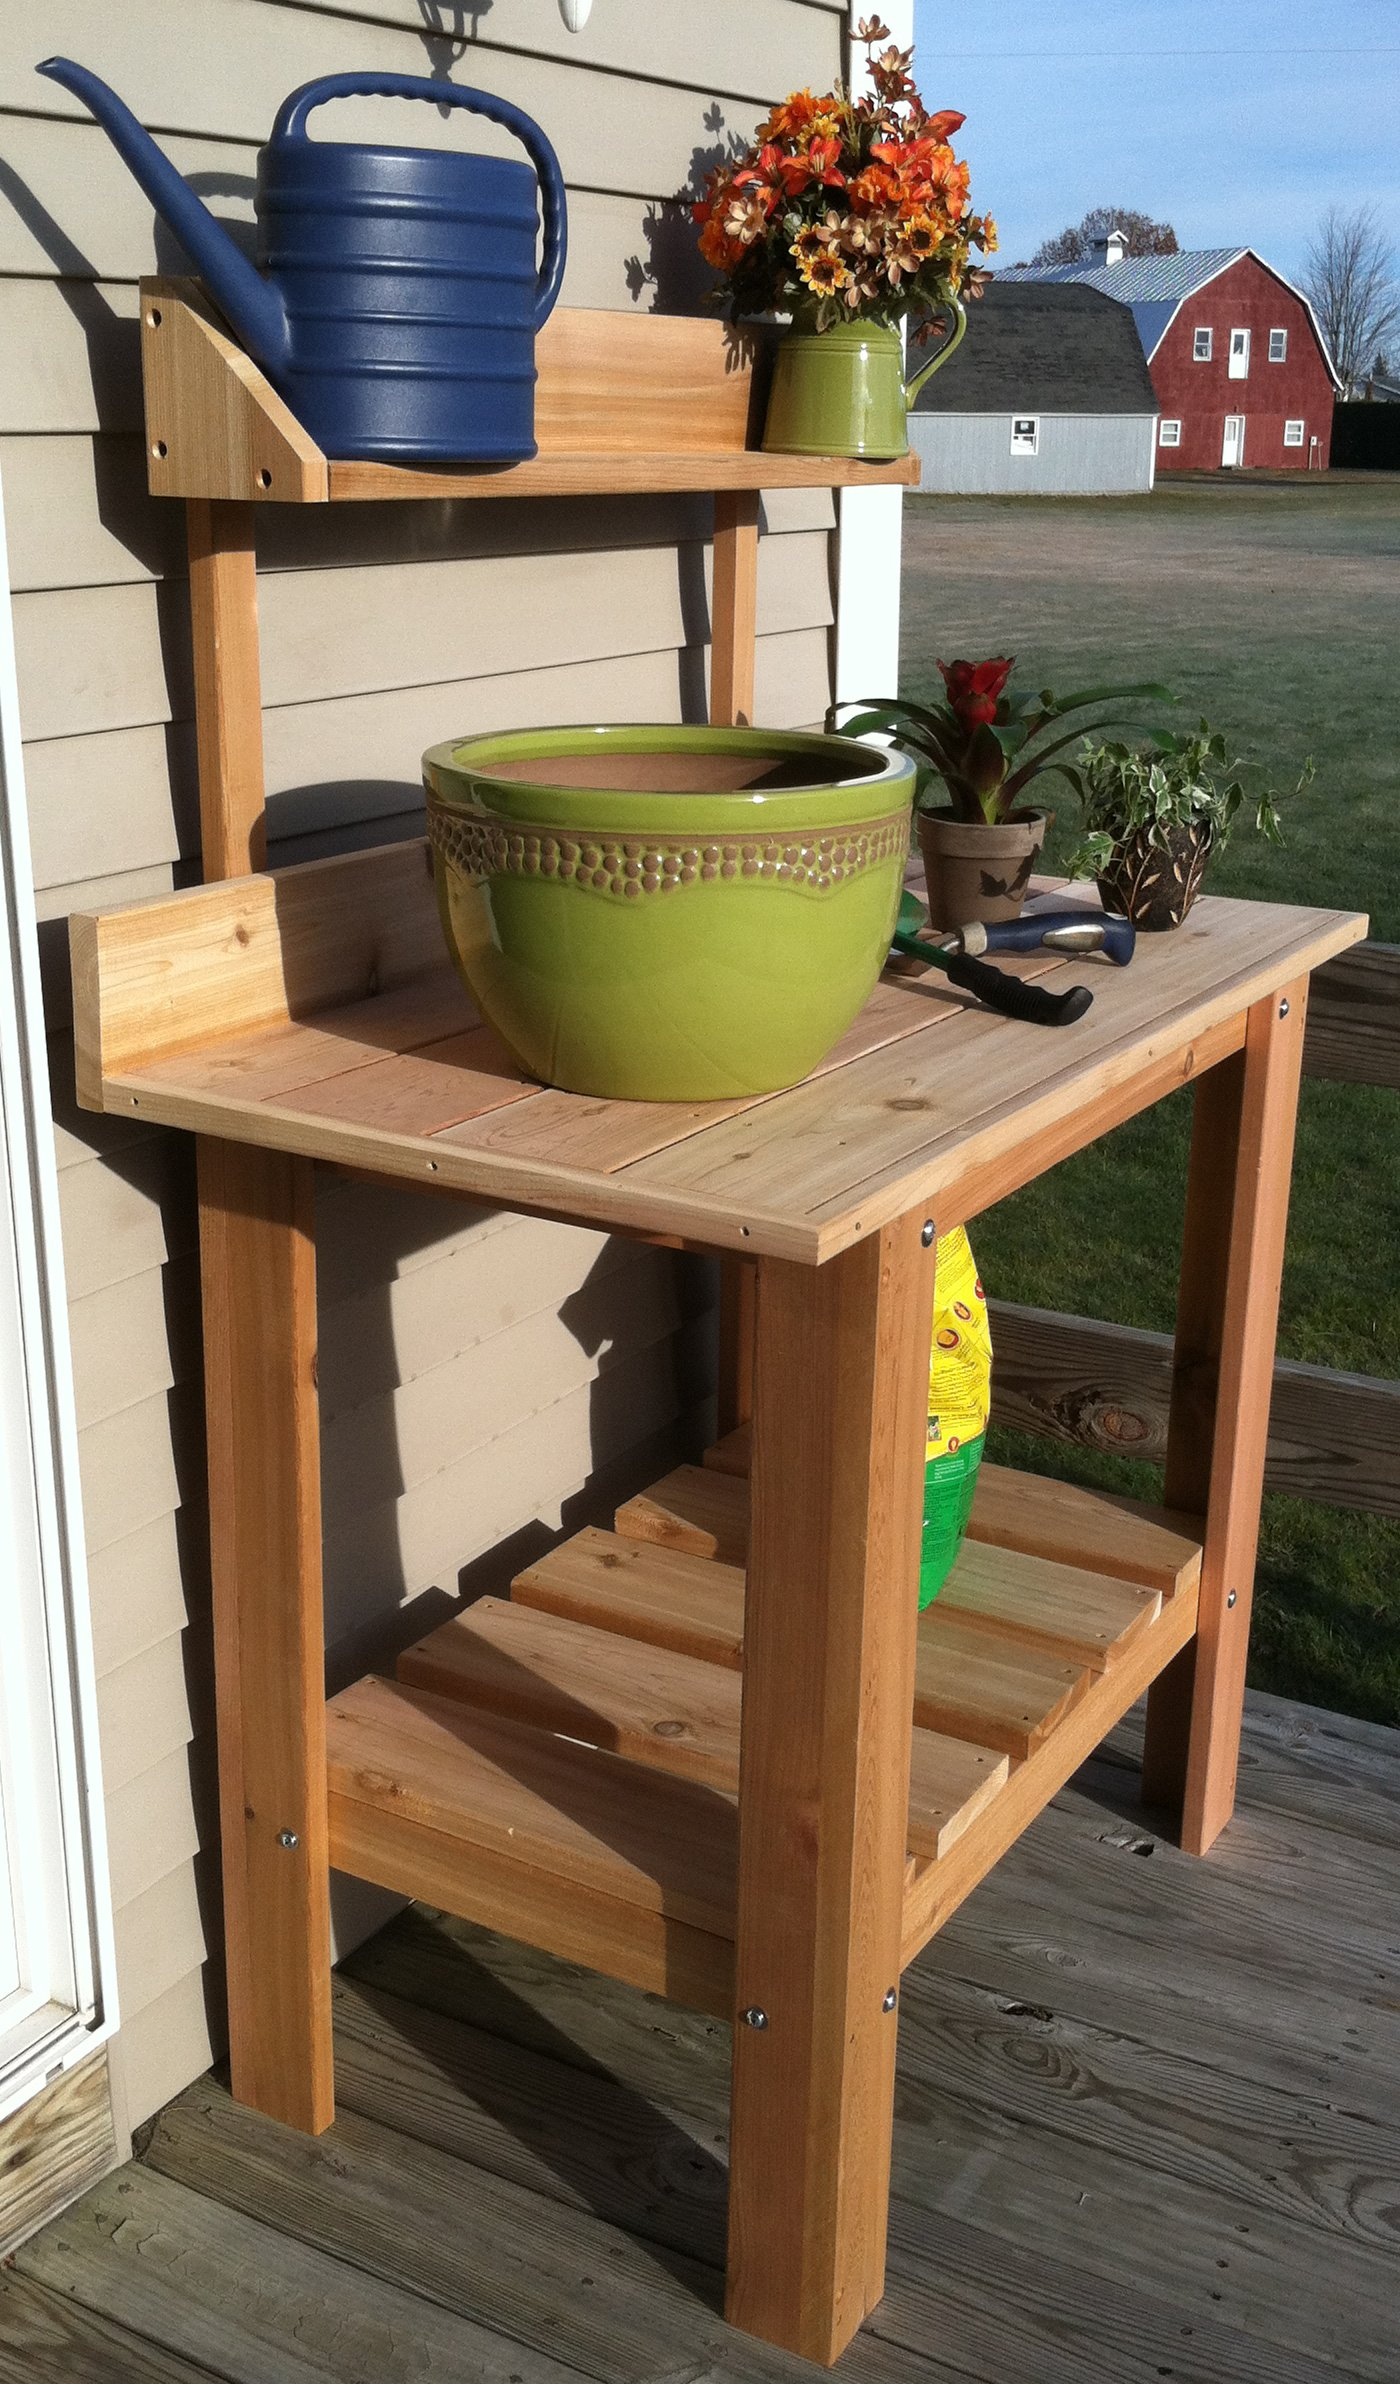 Infinite Cedar Premium Quality Potting Table by Infinite Cedar (Image #3)